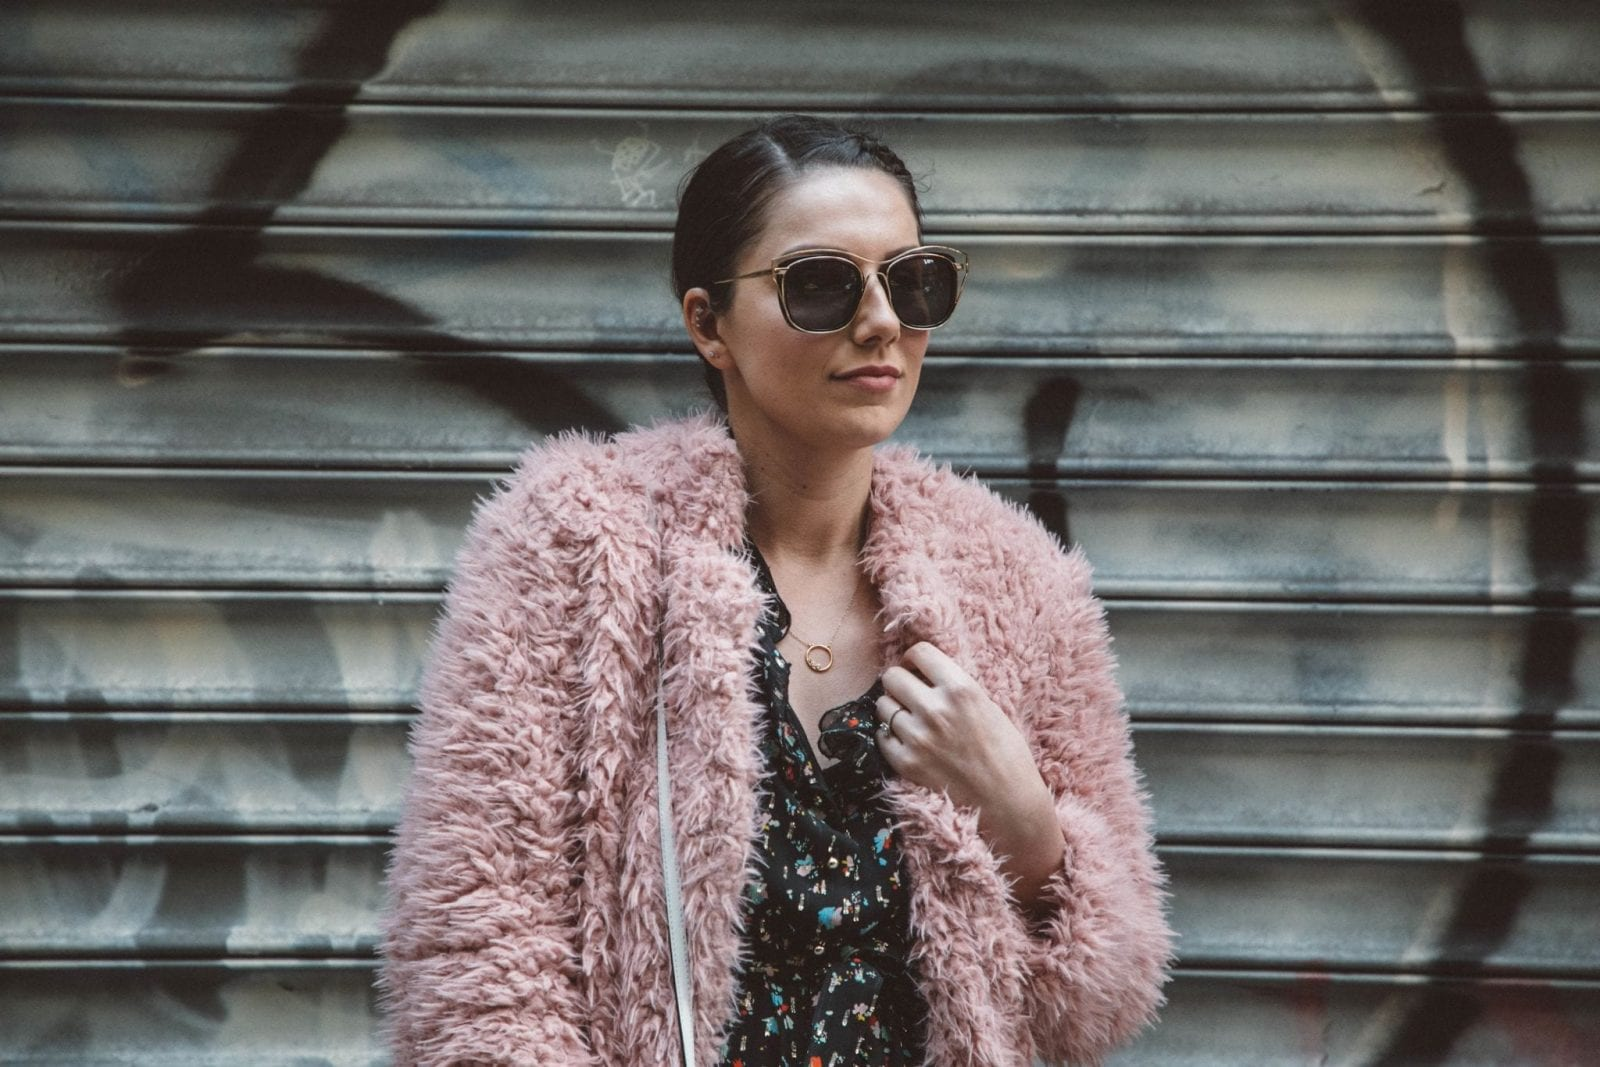 This is a close up shot of me wearing a pink fluffy coat from Amazon Fashion in New York CIty.